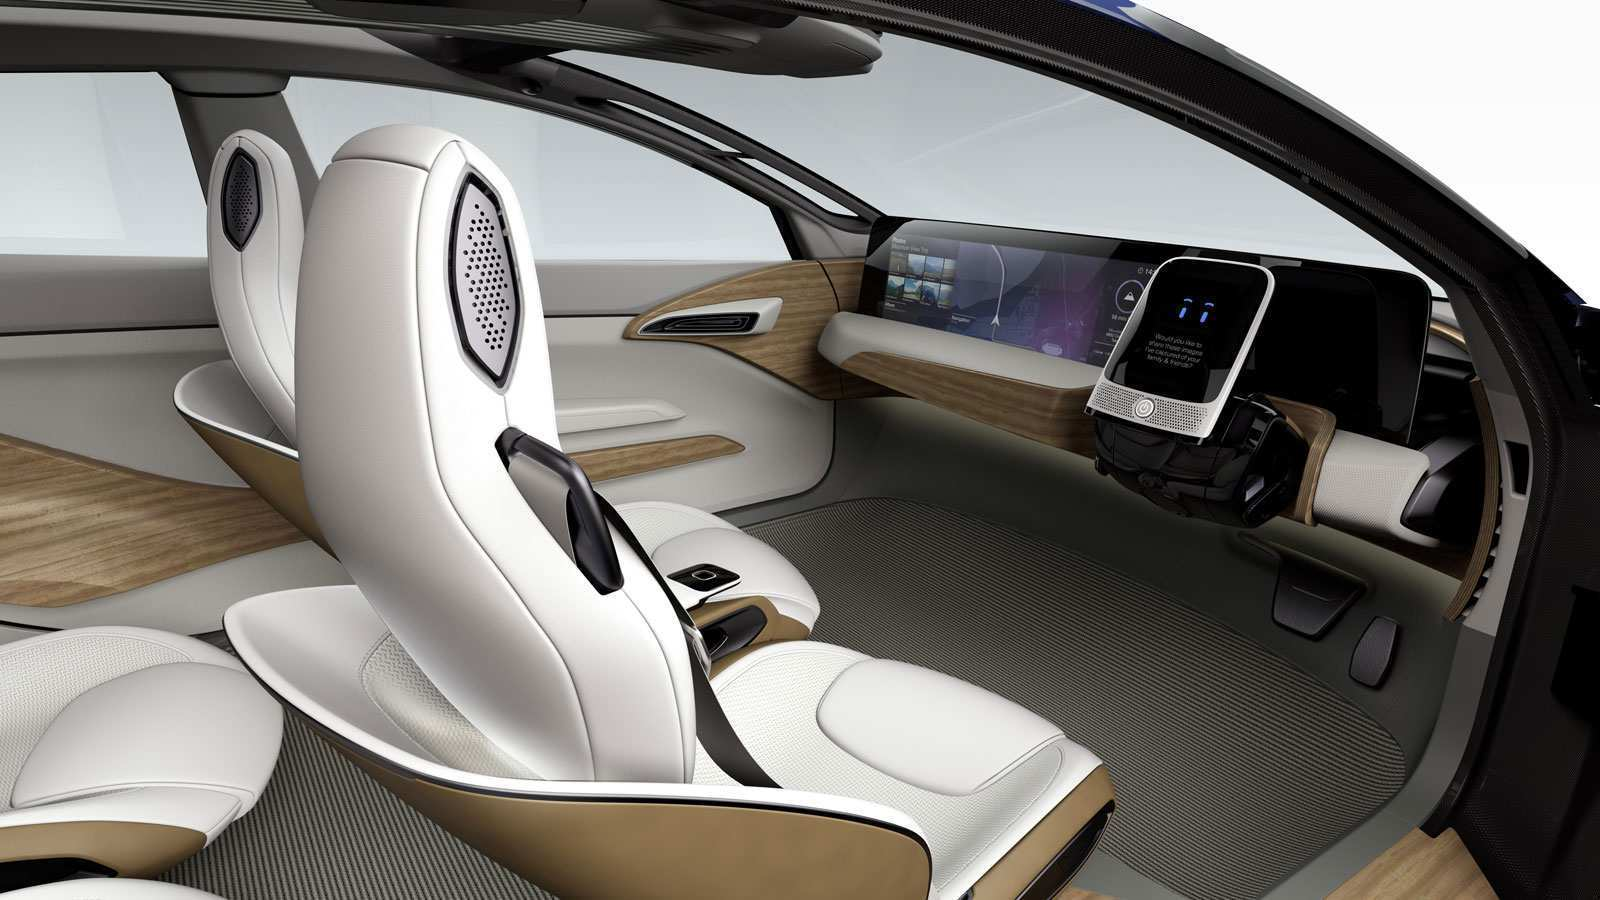 89 New Nissan Concept 2020 Interior Price Design And Review